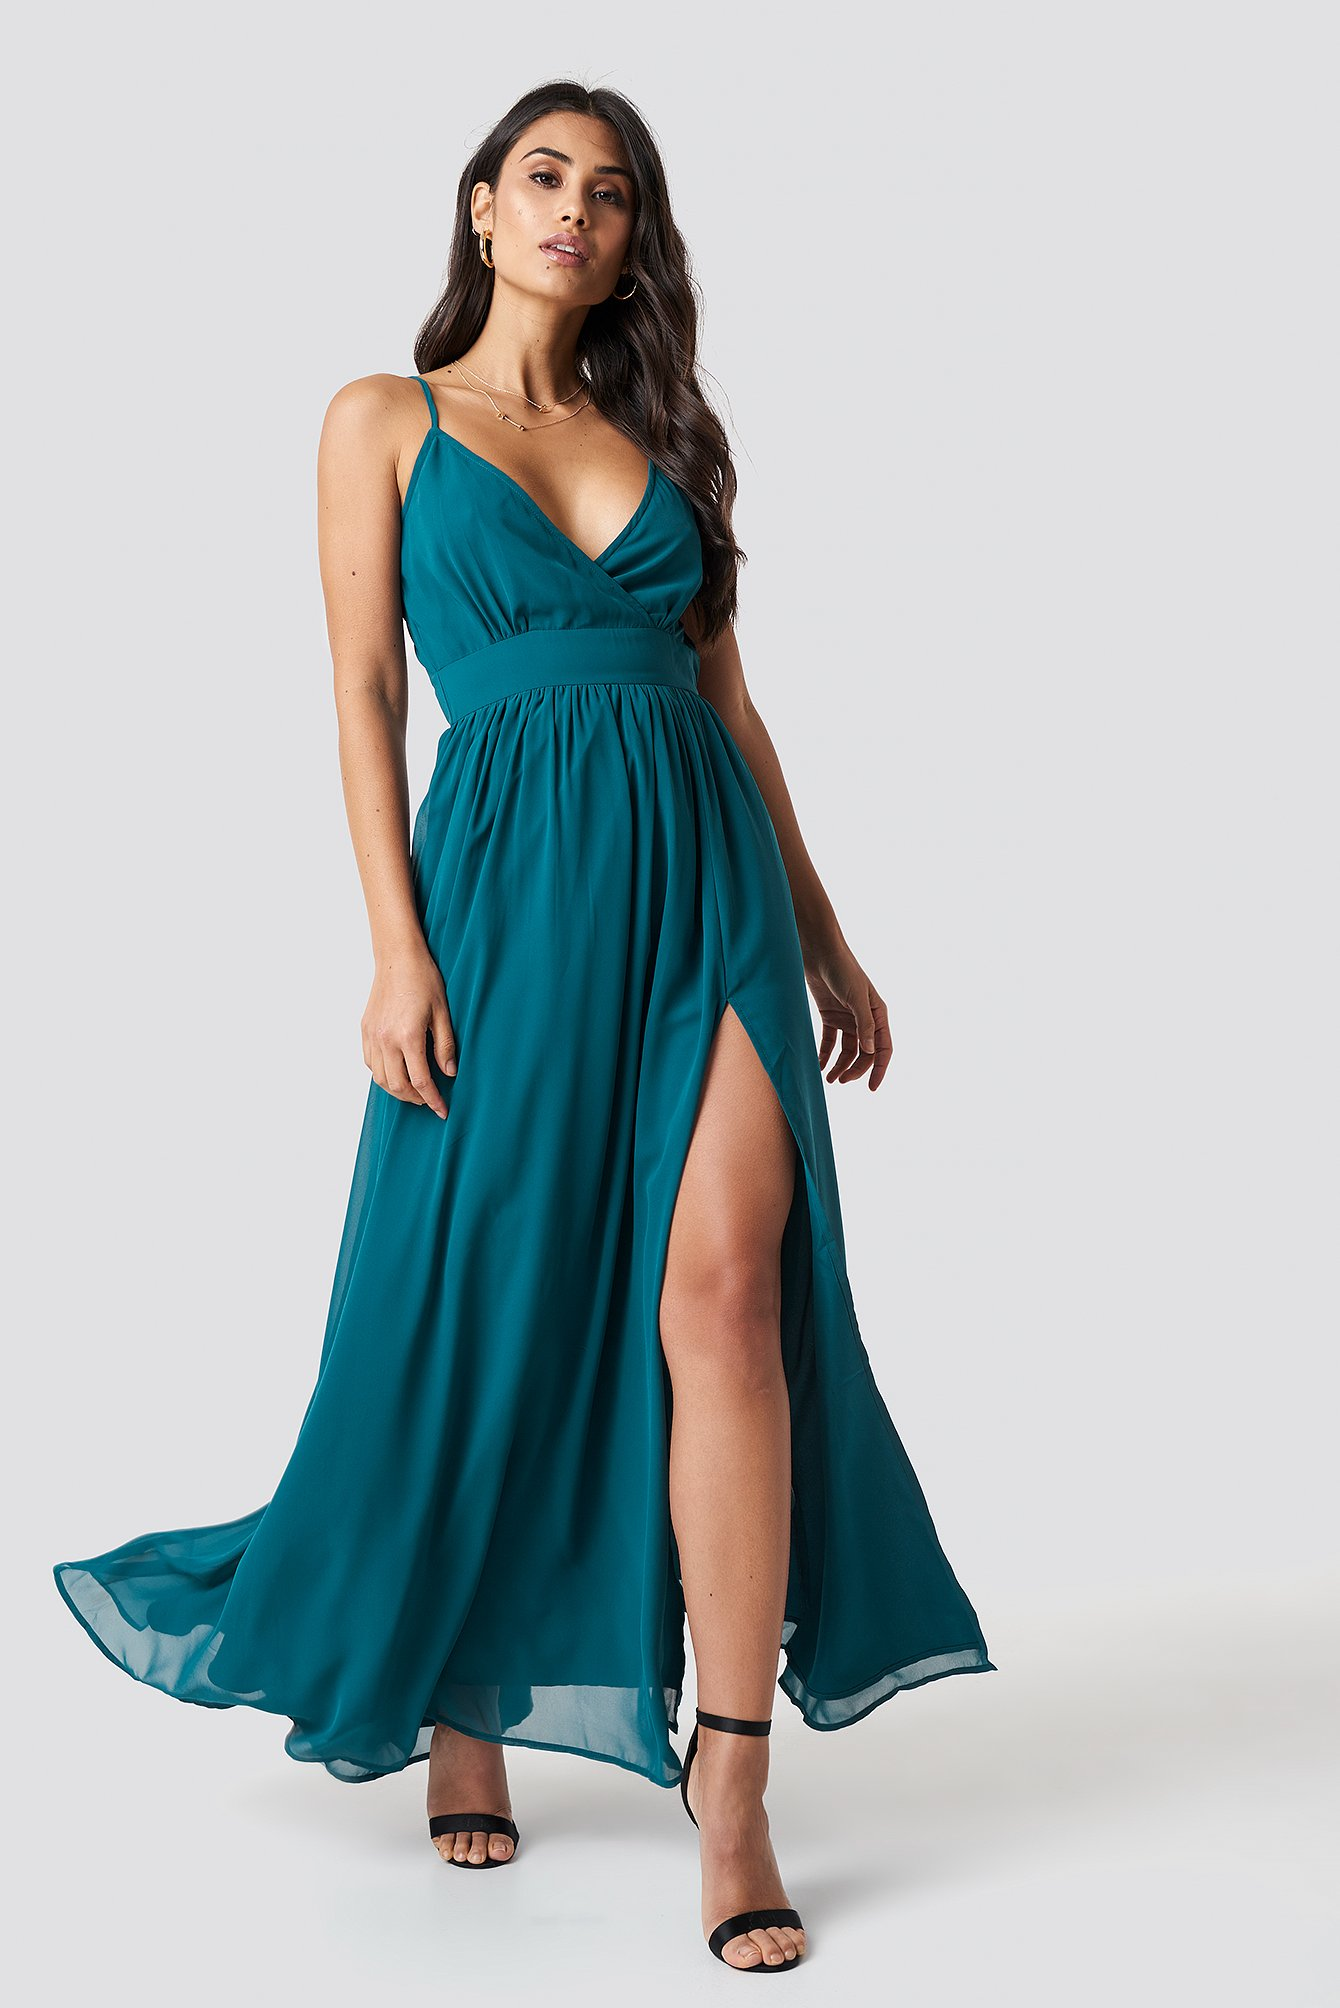 Front Overlap Maxi Dress - Blue, Turquoise in Blue,Turquoise